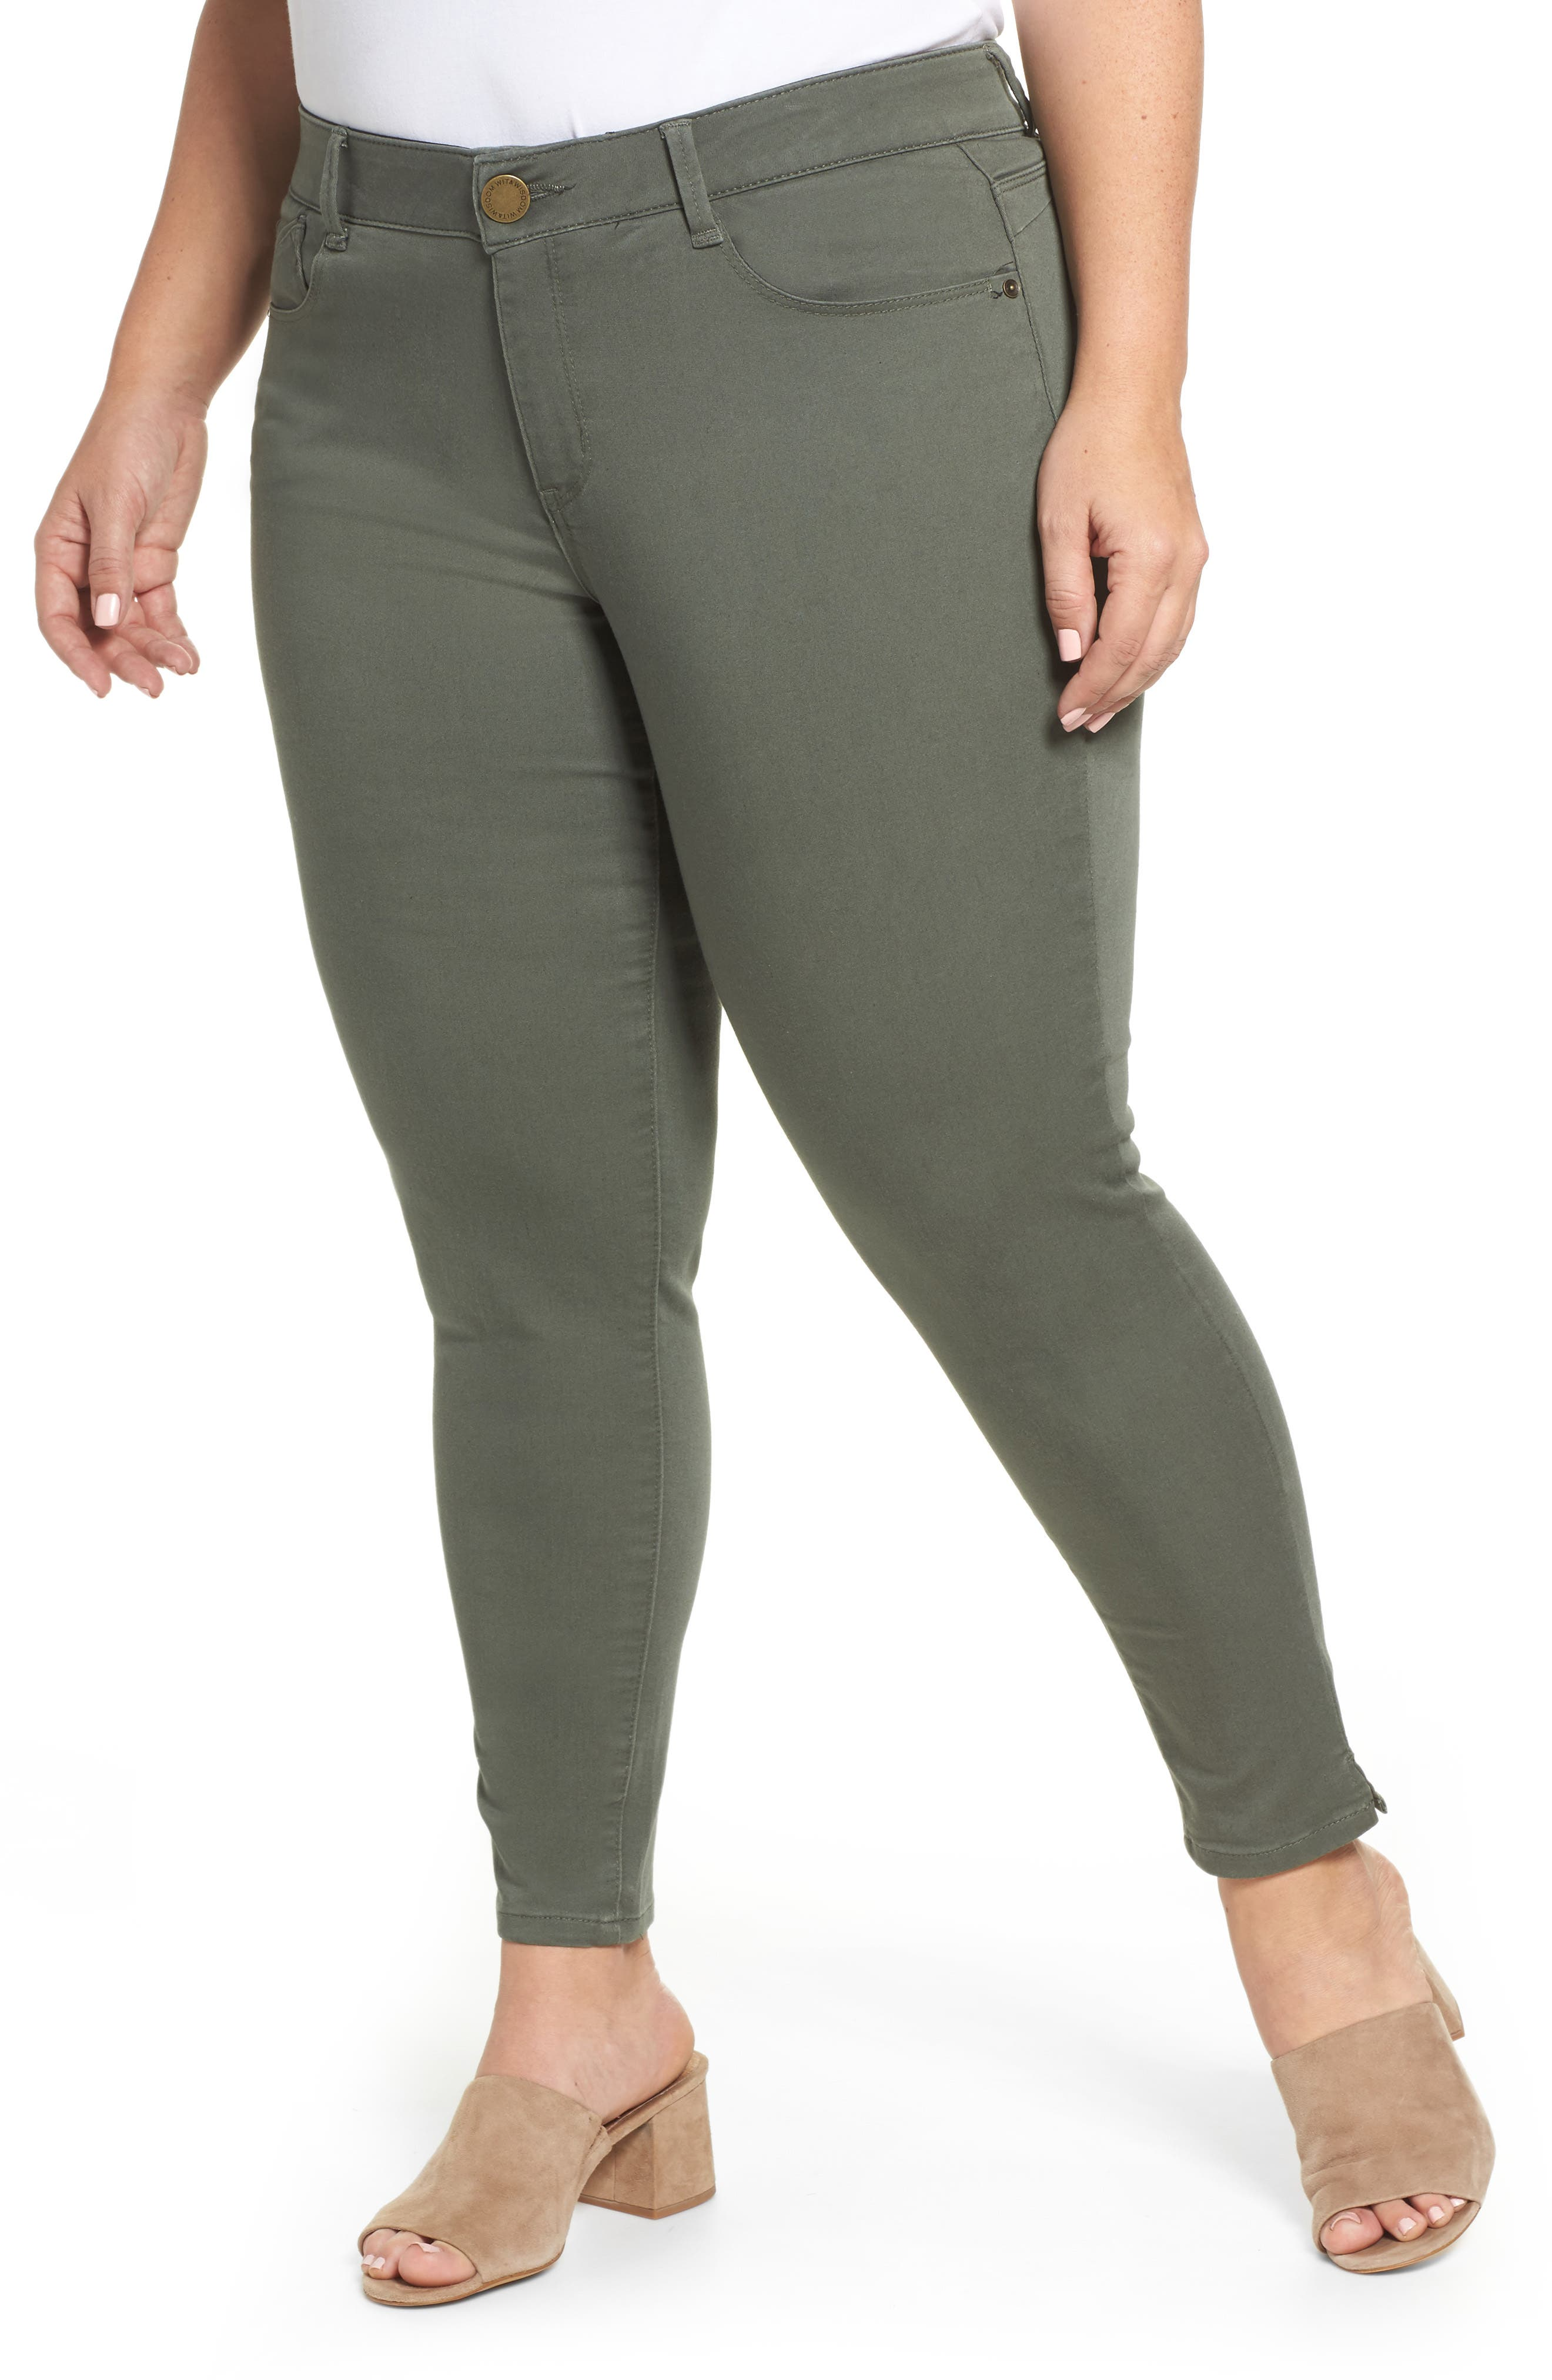 Ab-solution Ankle Pants,                             Main thumbnail 1, color,                             THYME